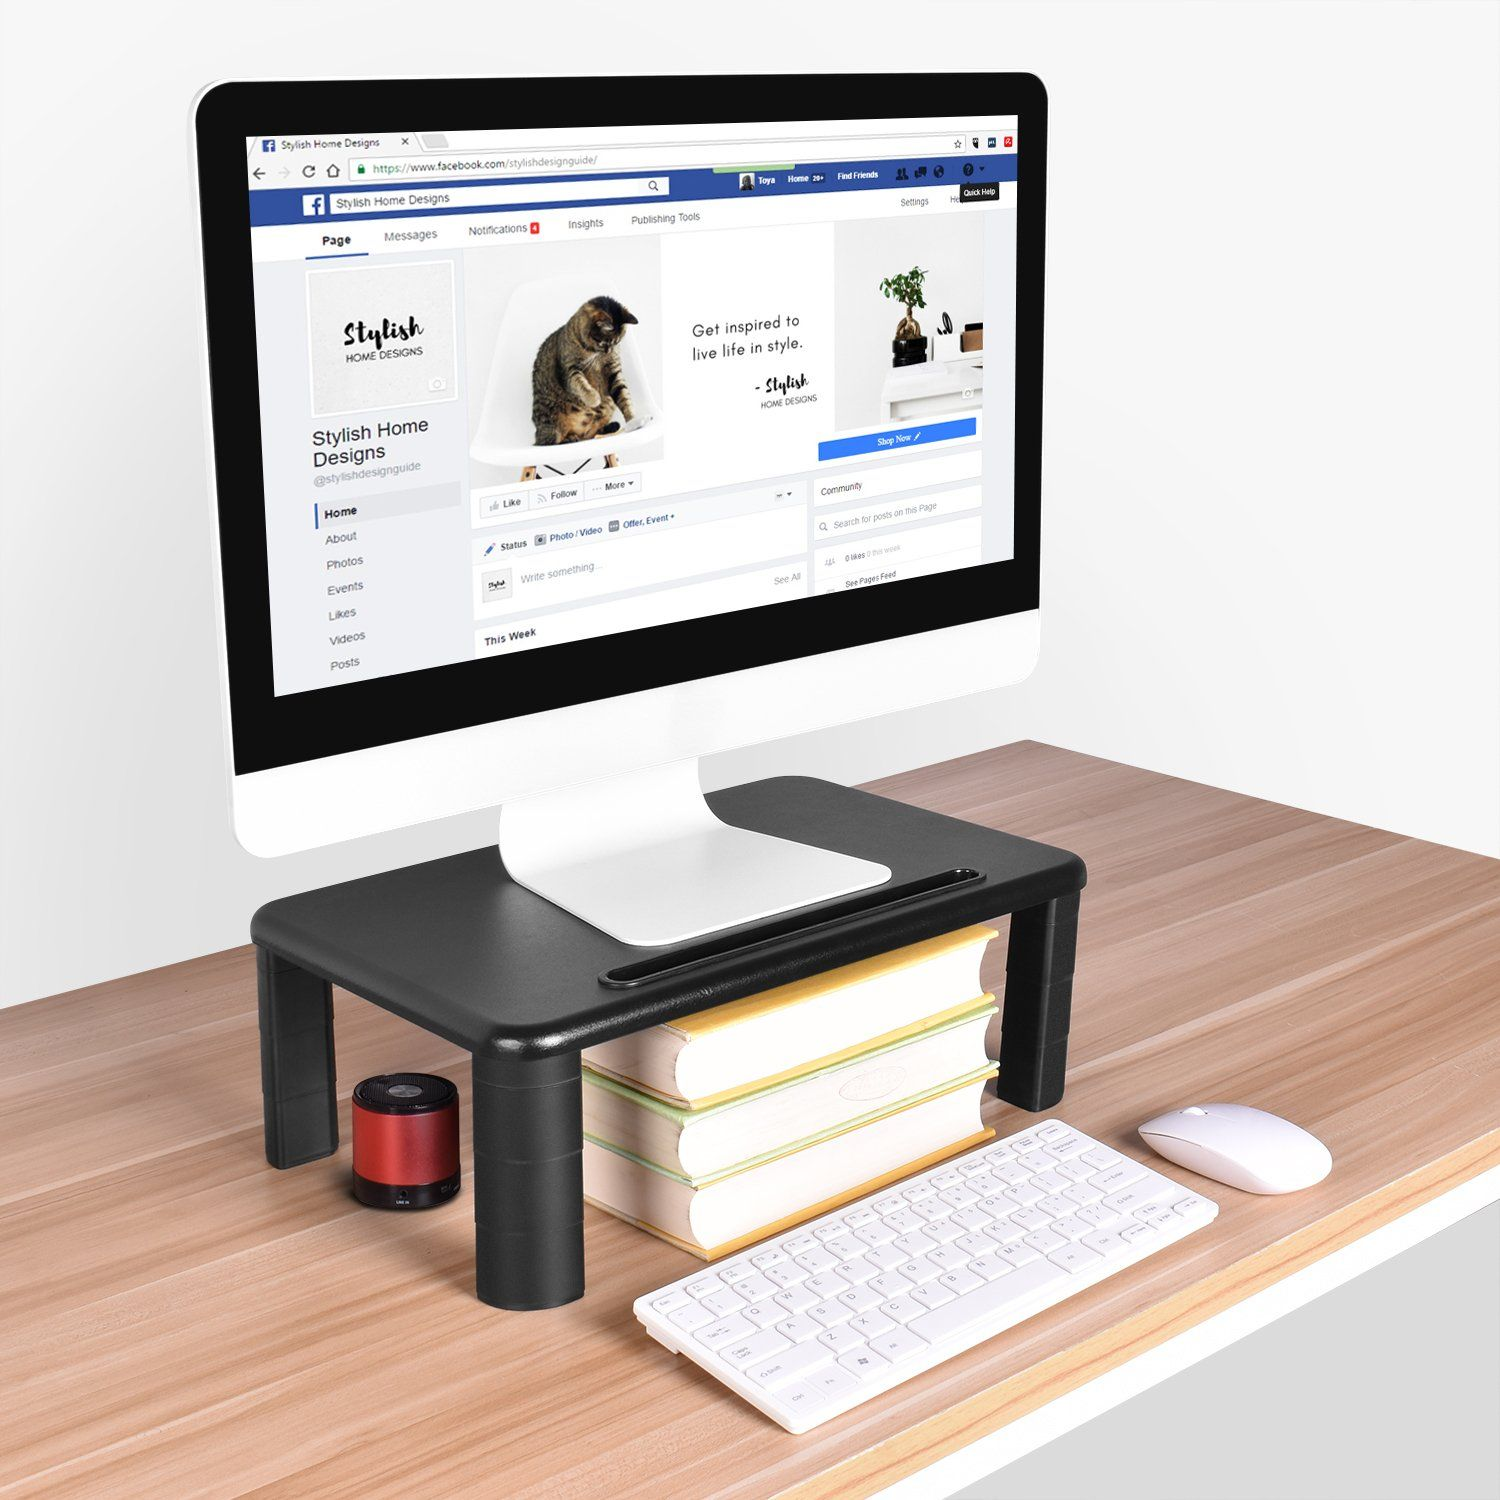 Monitor Stand Riser with Adjustable Height and Storage Organizer